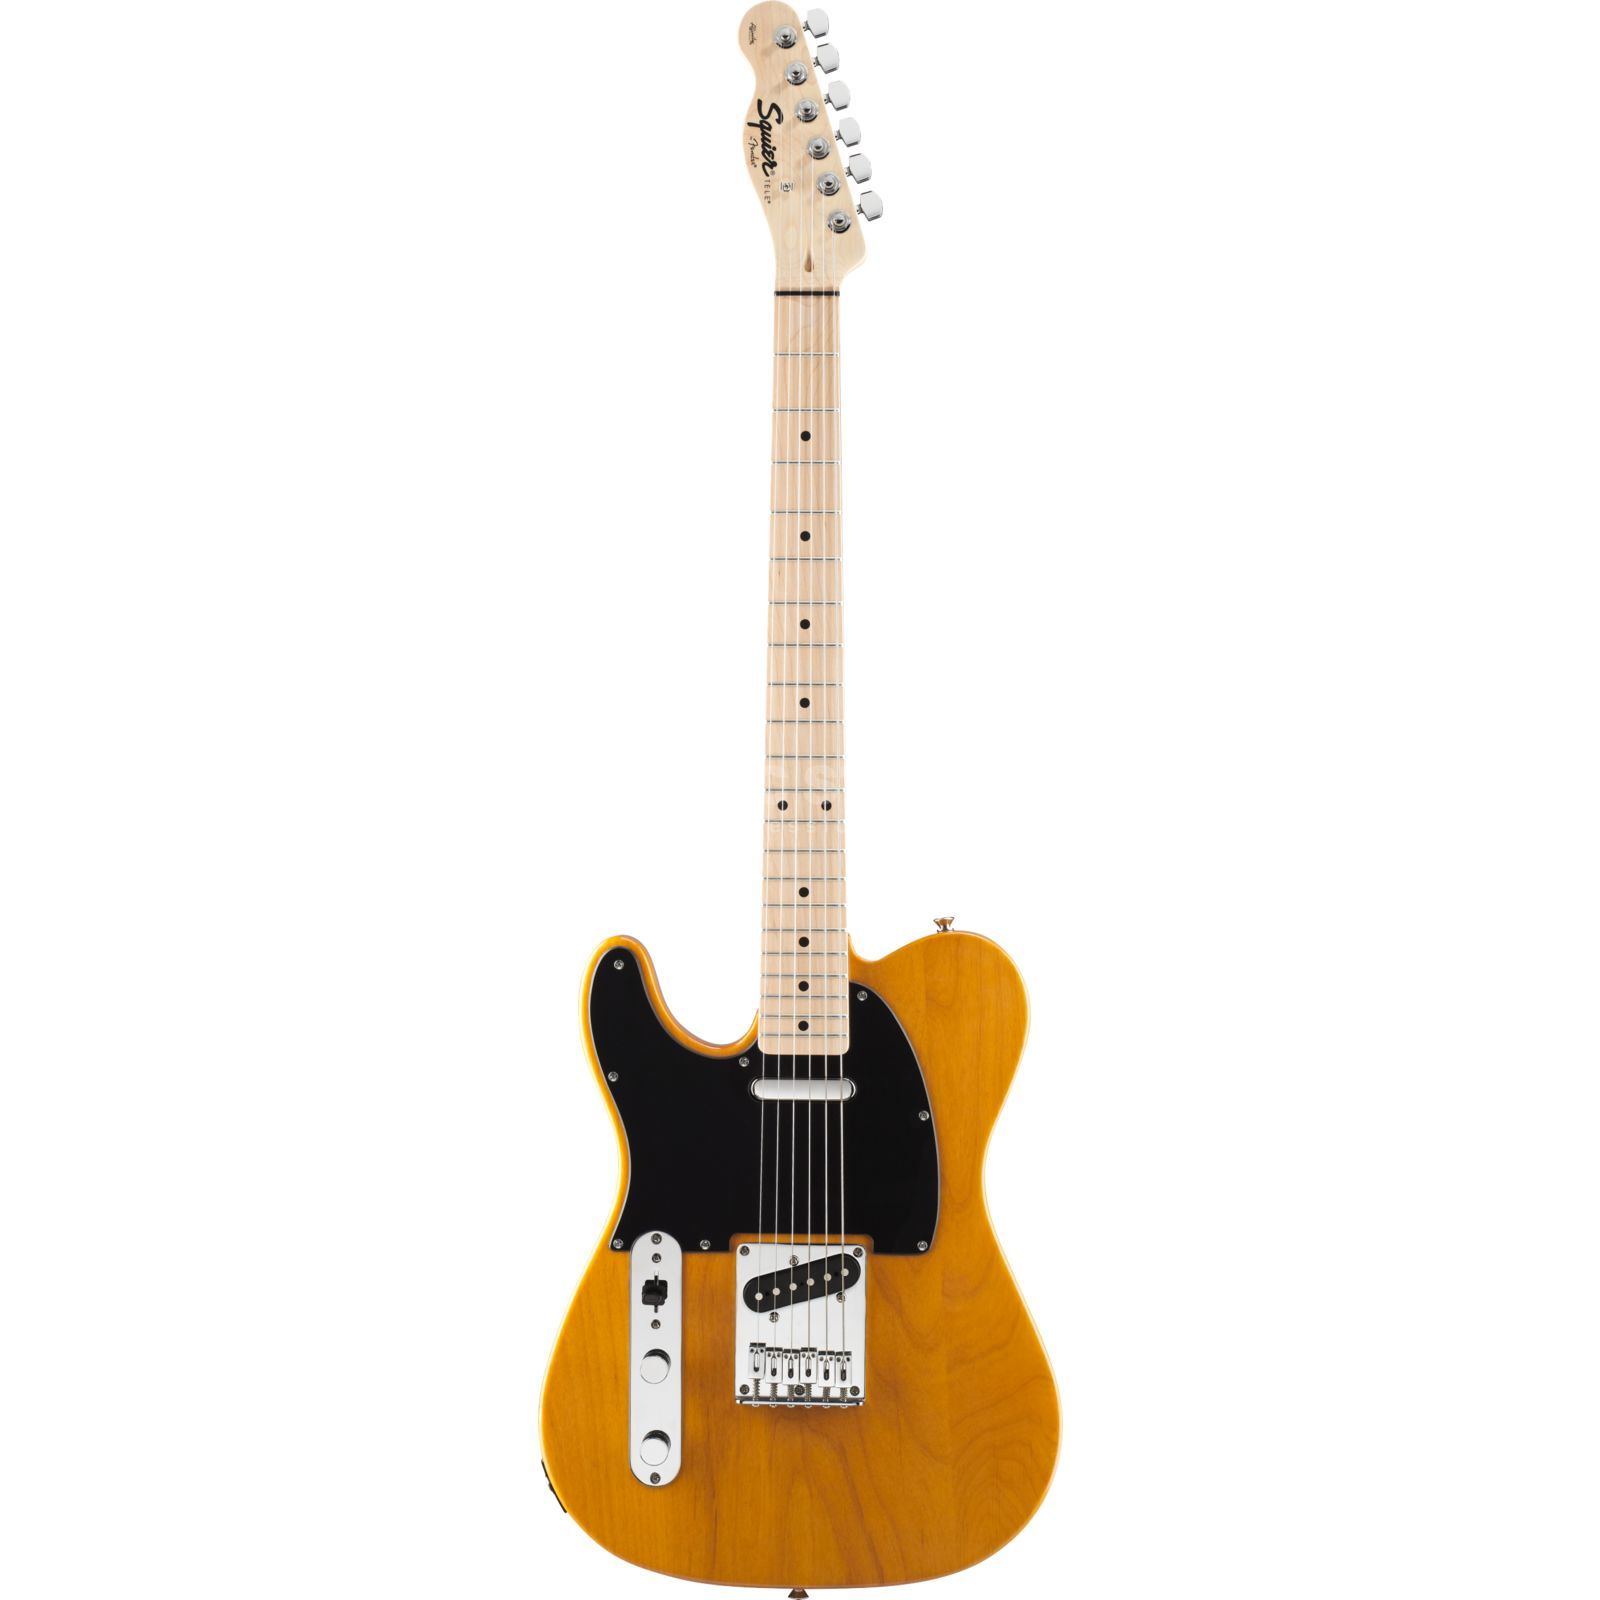 Squier by Fender Affinity Series Telecaster MN Butterscotch Blonde Lefthand Produktbild